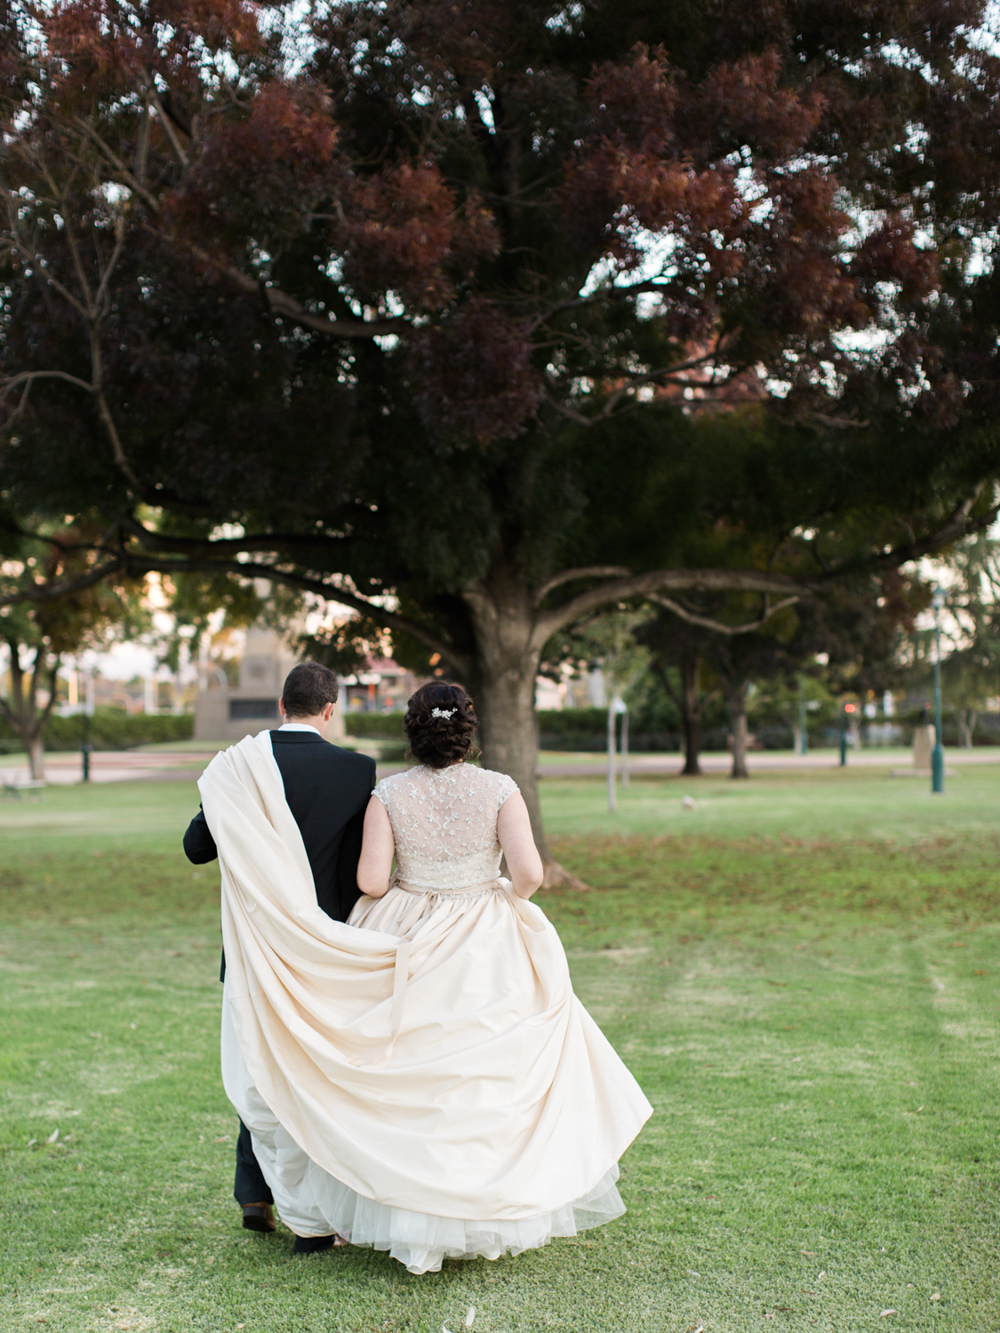 00064- Dubbo NSW Wedding Photographer Sheri McMahon.jpg